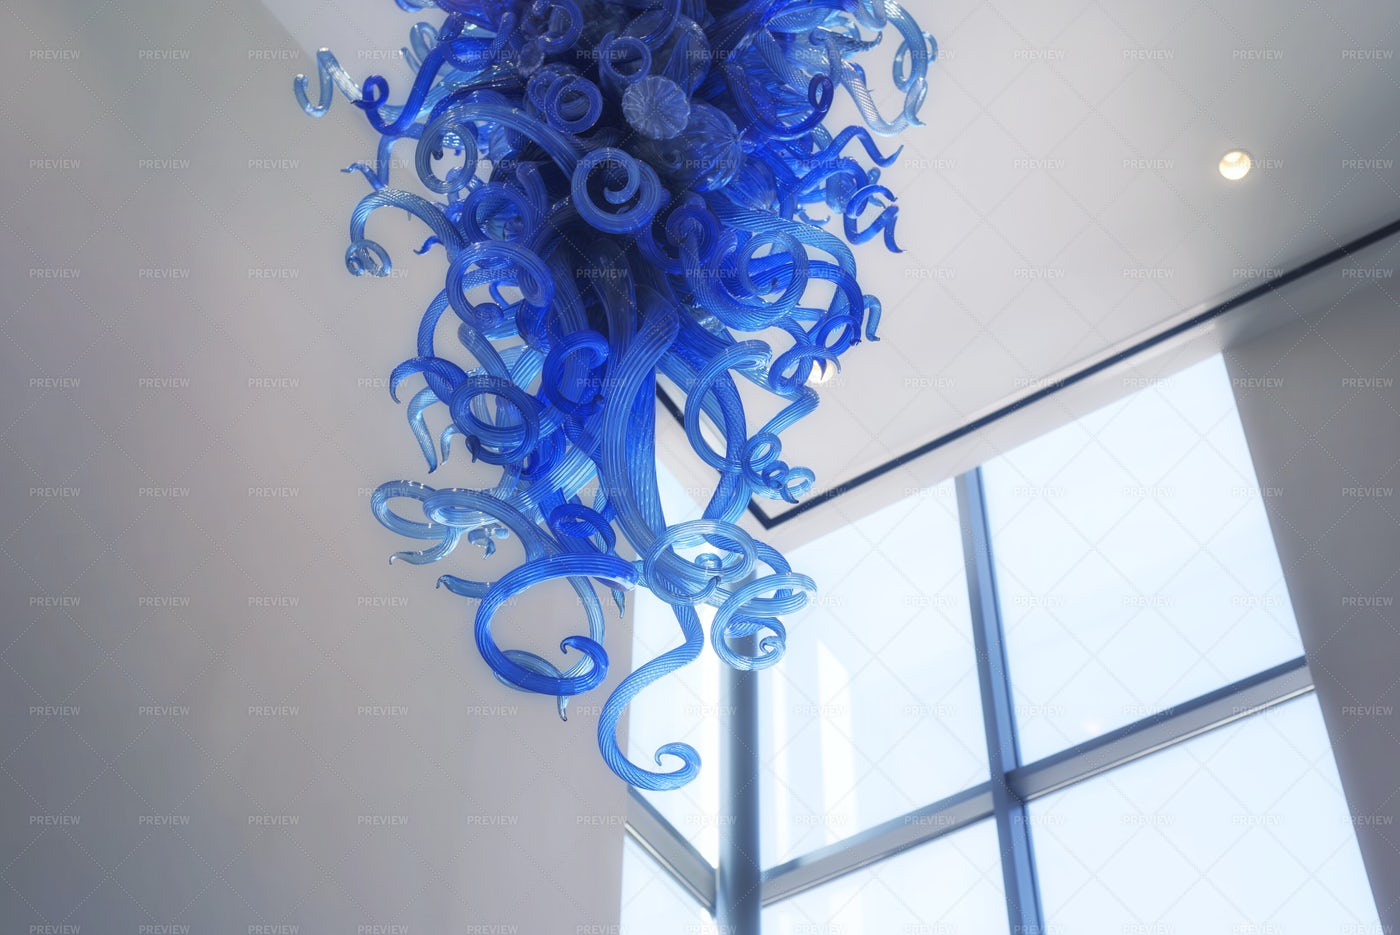 Dale Chihuly Blown Glass Display: Stock Photos